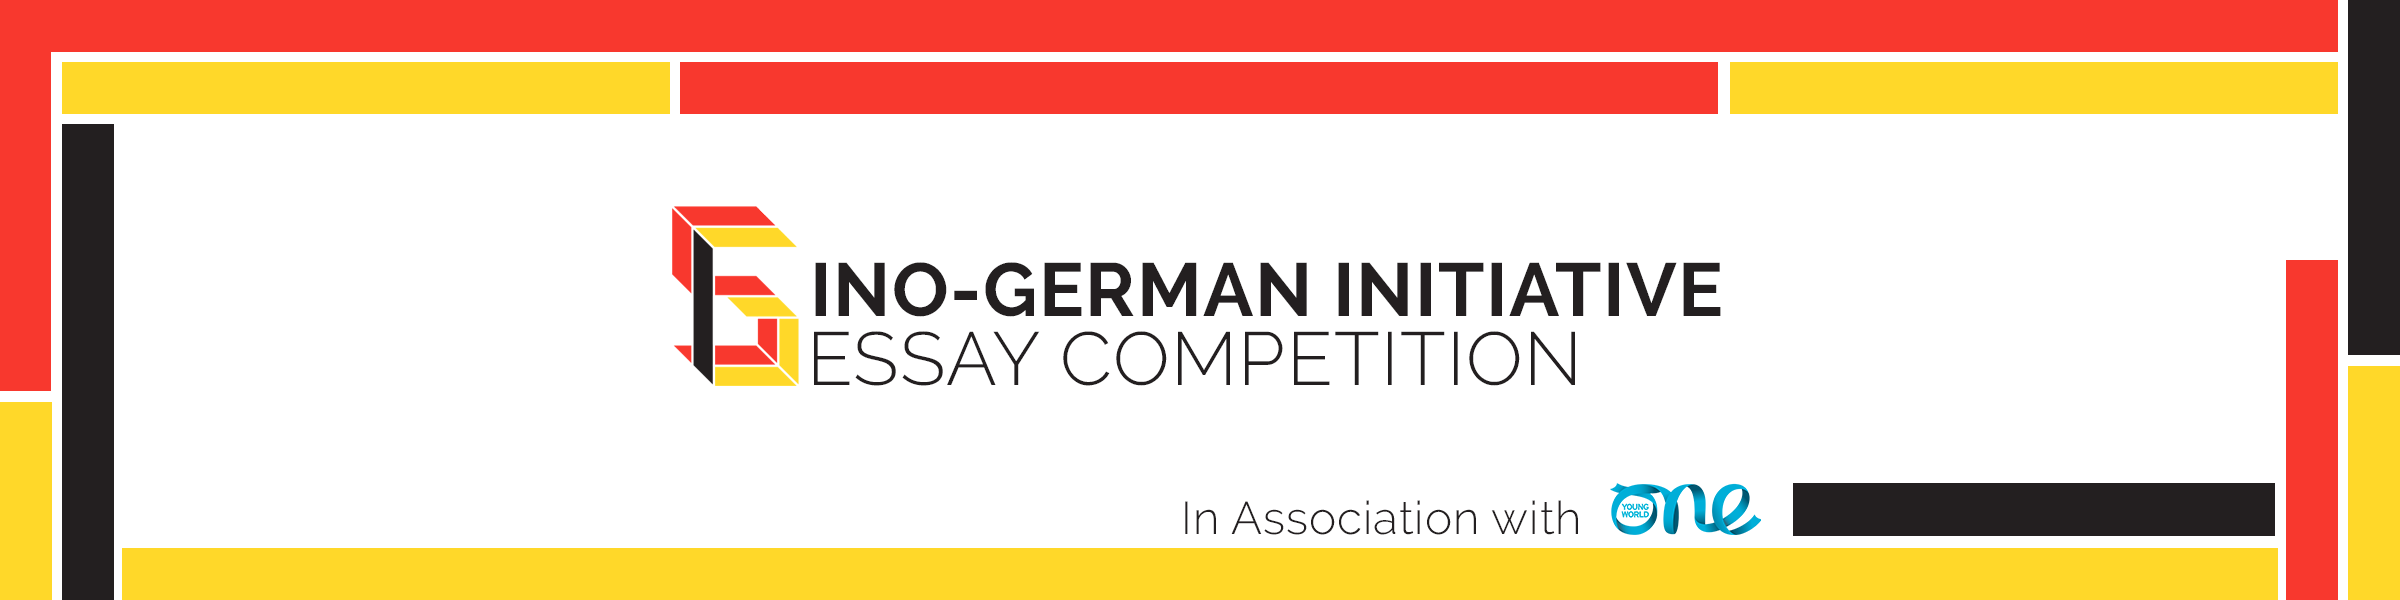 Sino-German Initiative Essay Competition in association with OYW